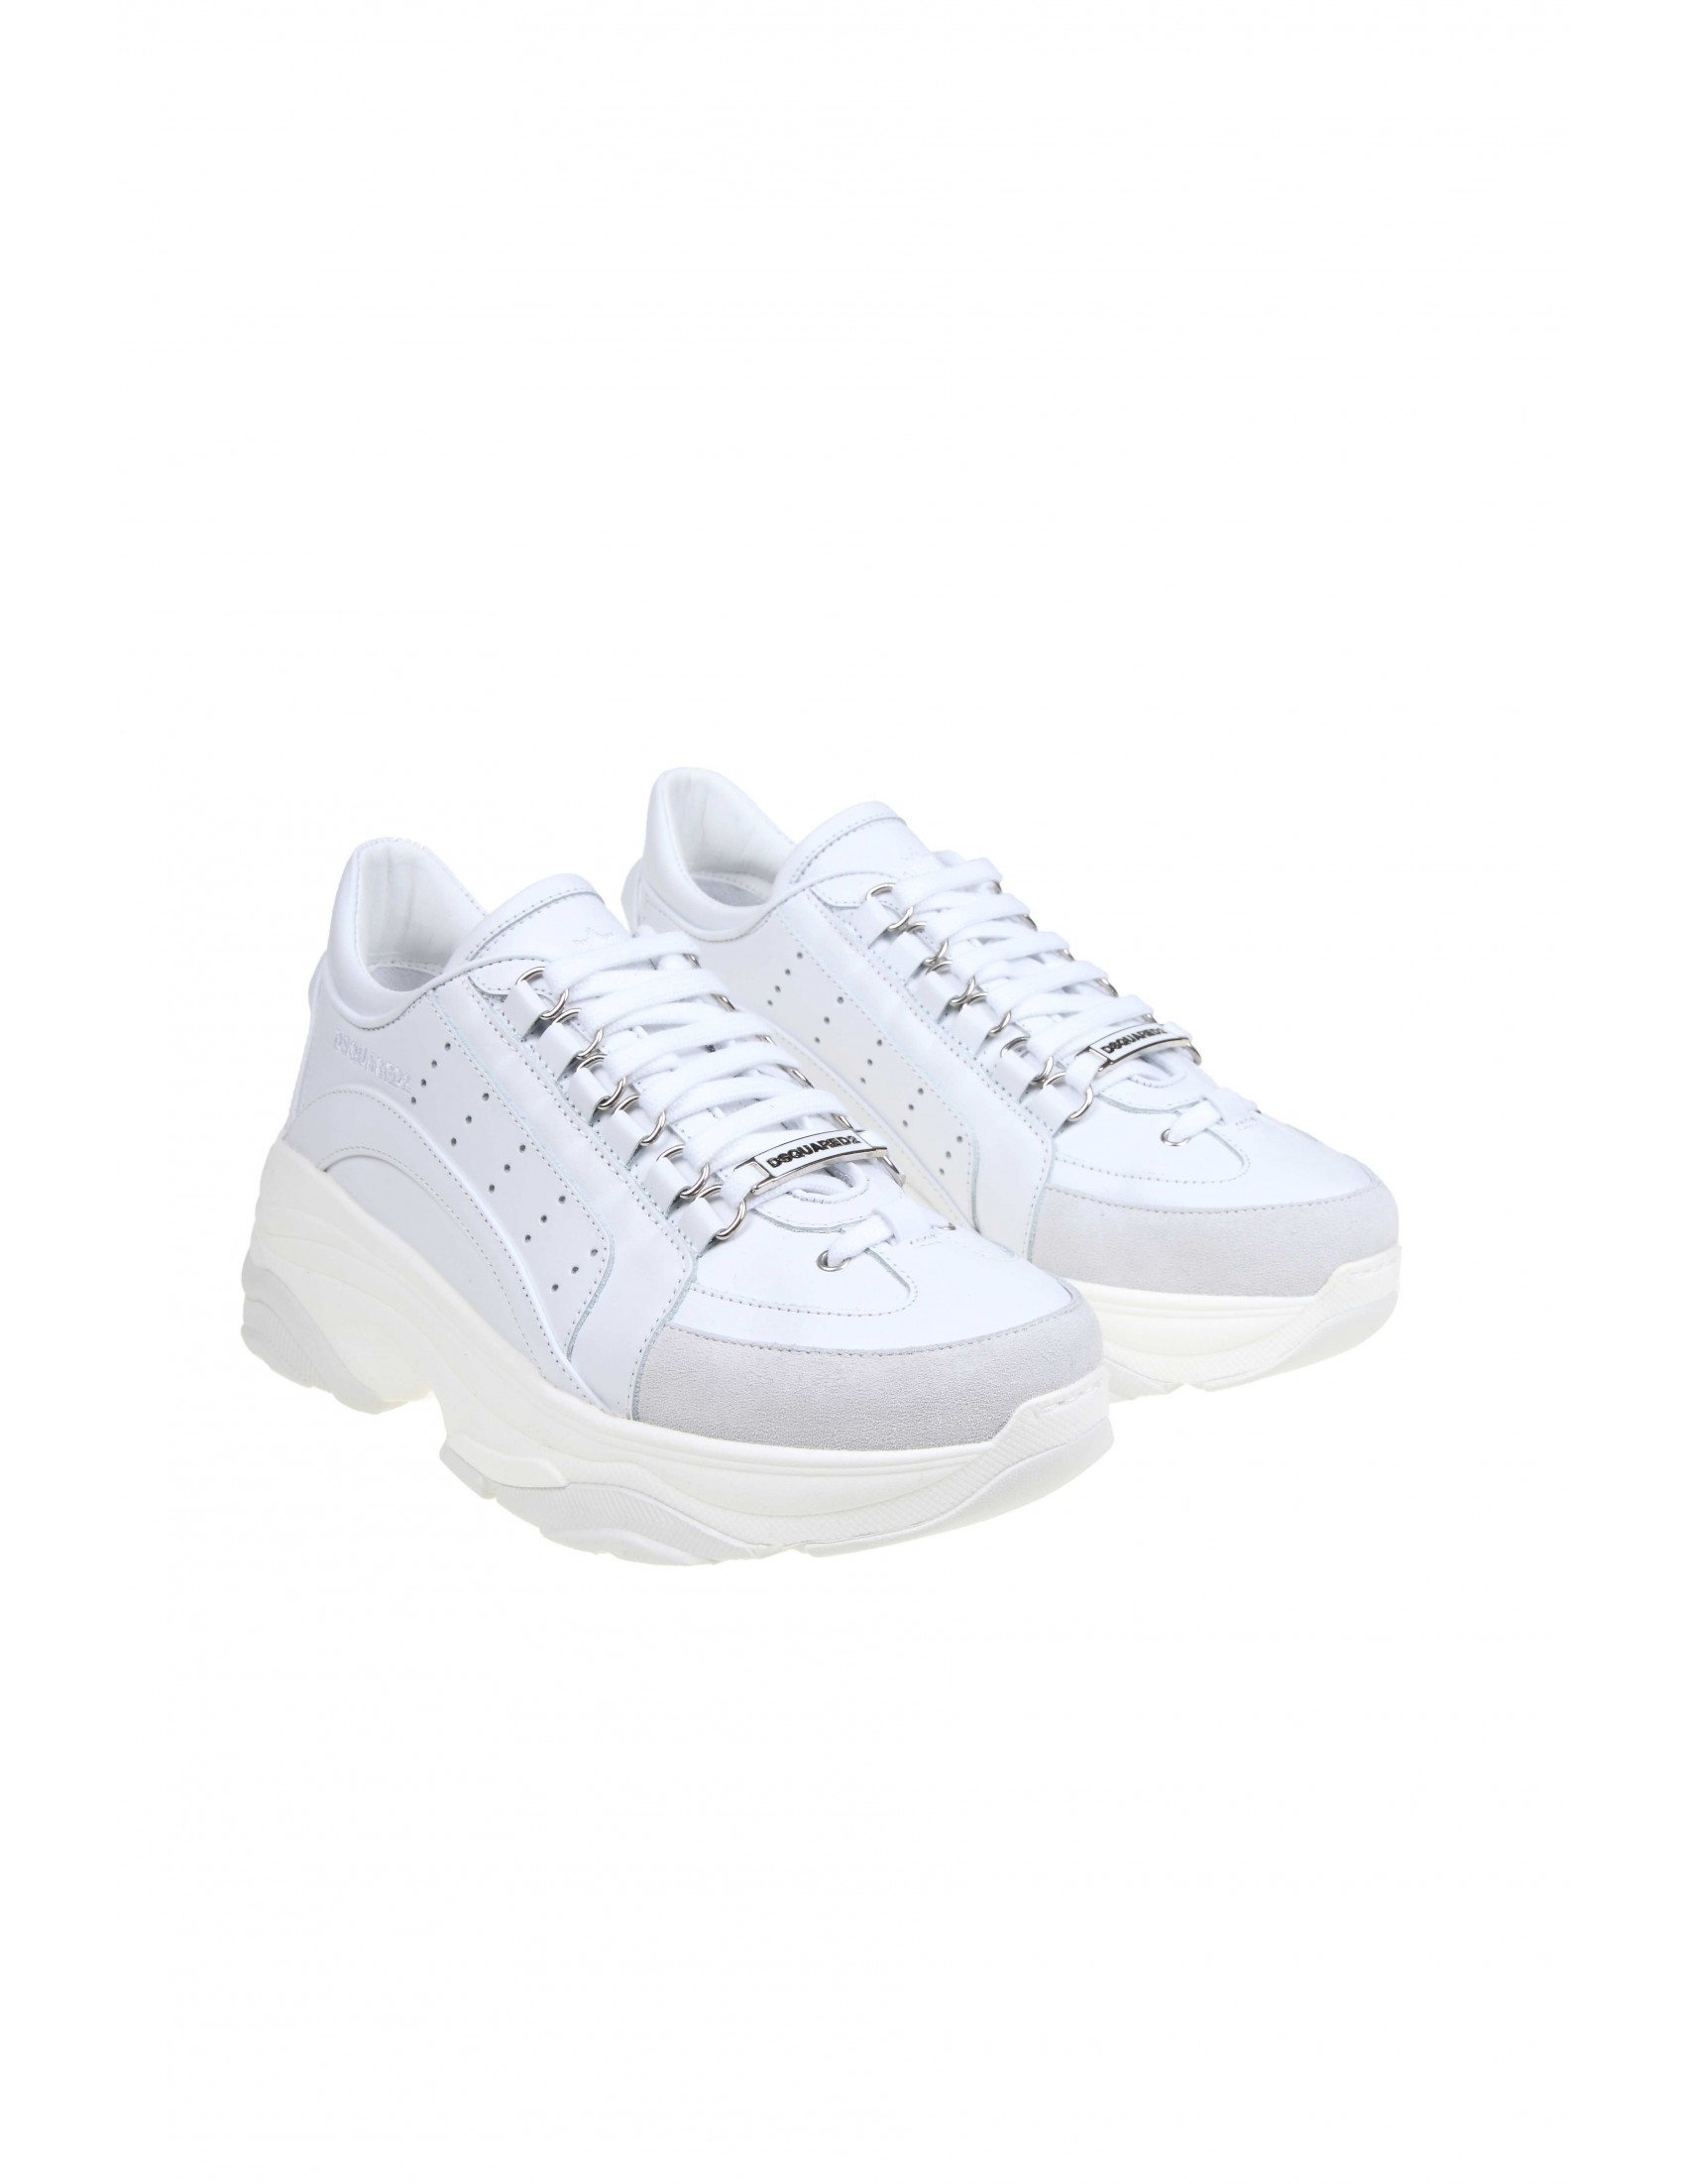 b12fafc4517 DSQUARED SNEAKERS BUMPY 551 IN WHITE LEATHER